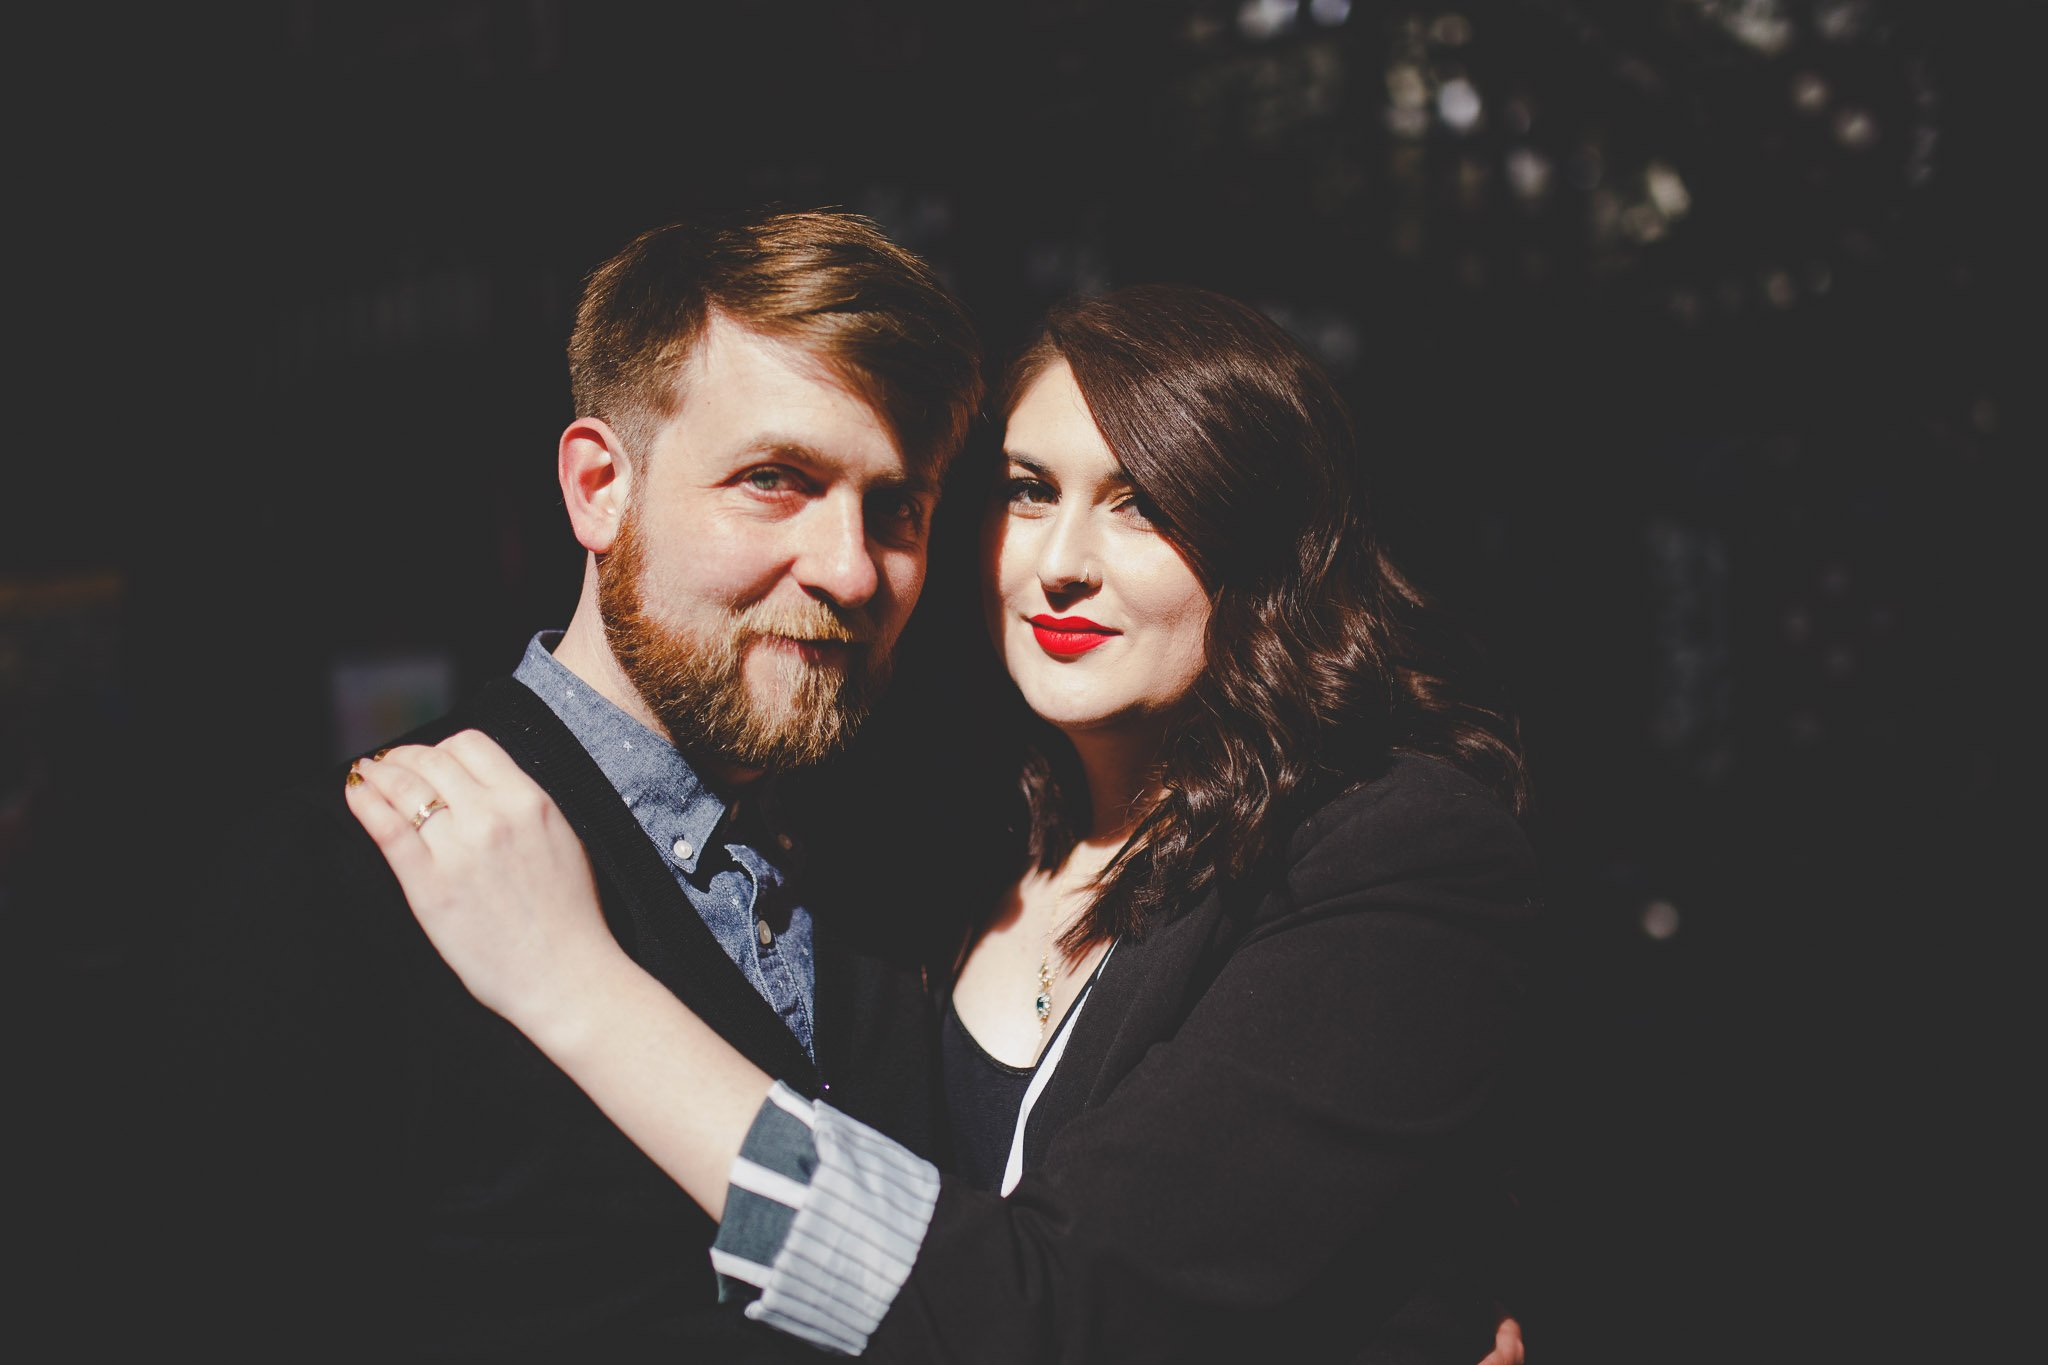 A couple pose for an engagement portrait in Smithfield's Market London. Photography by thatthingyoupluck.